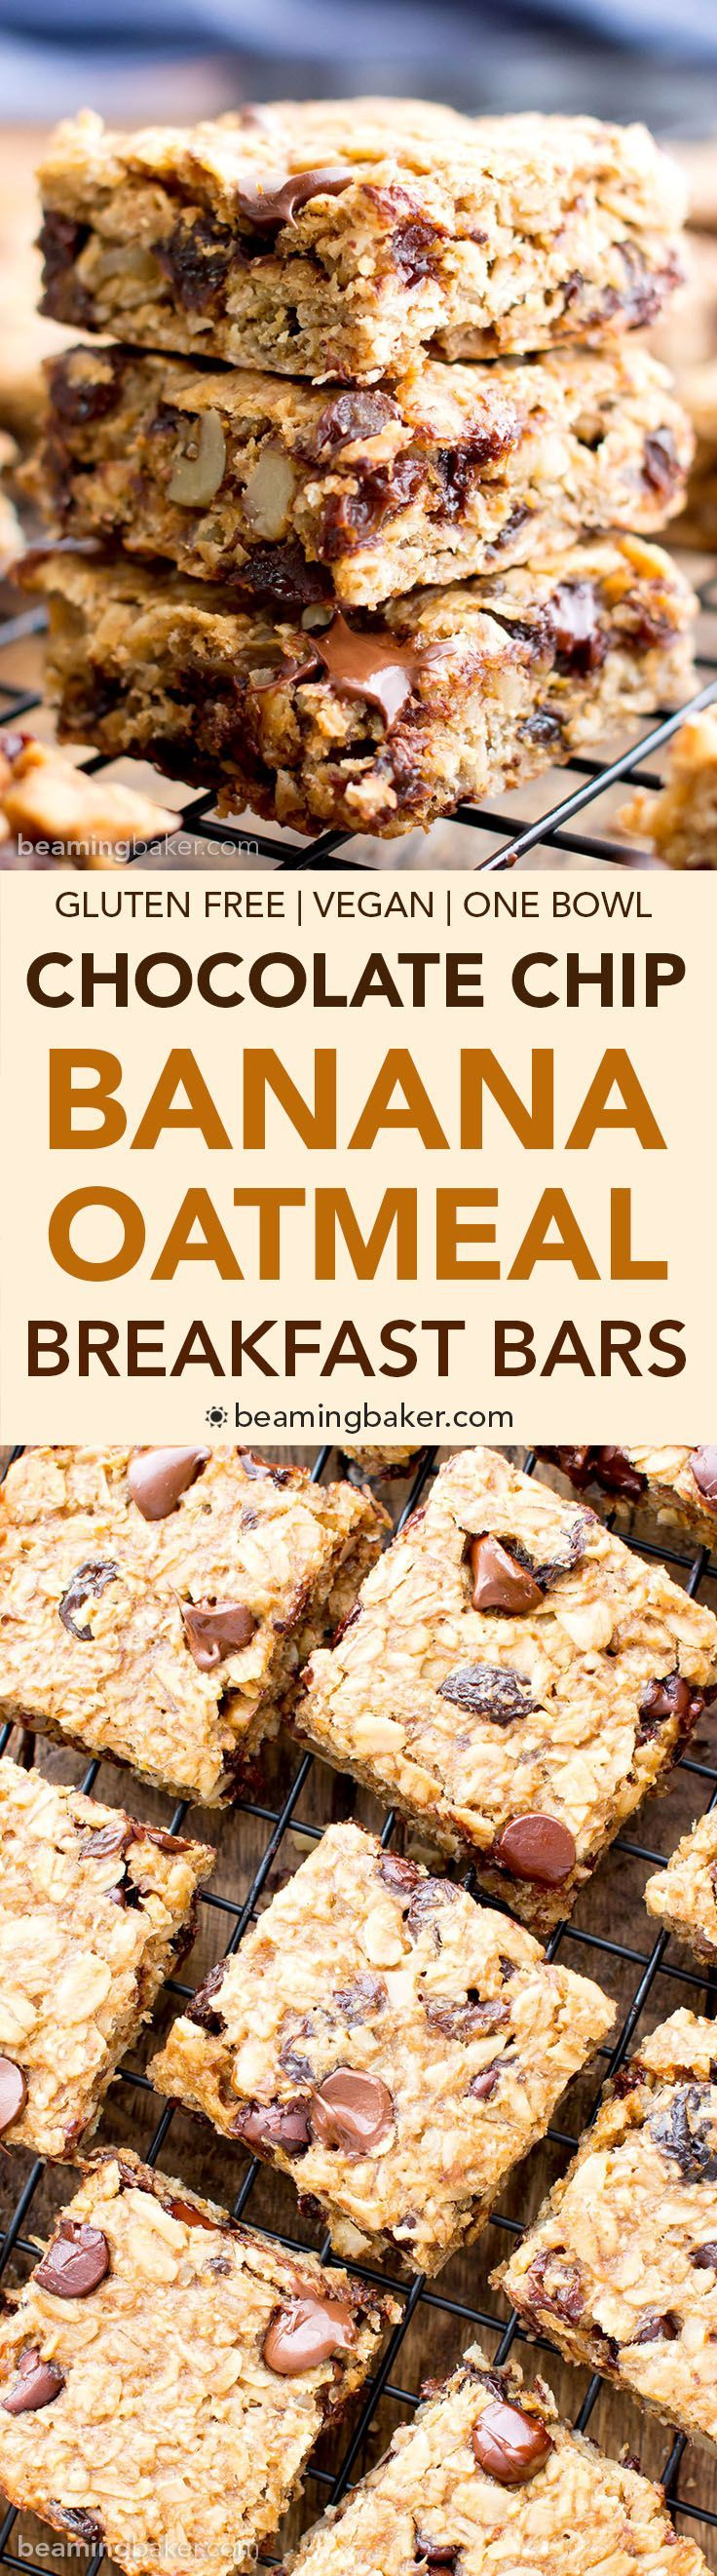 Gluten Free Banana Chocolate Chip Oatmeal Breakfast Bars (V, GF): a one bowl recipe for simply delicious banana breakfast bars packed with your favorites for a good morning! #Vegan #GlutenFree #DairyFree | BeamingBaker.com